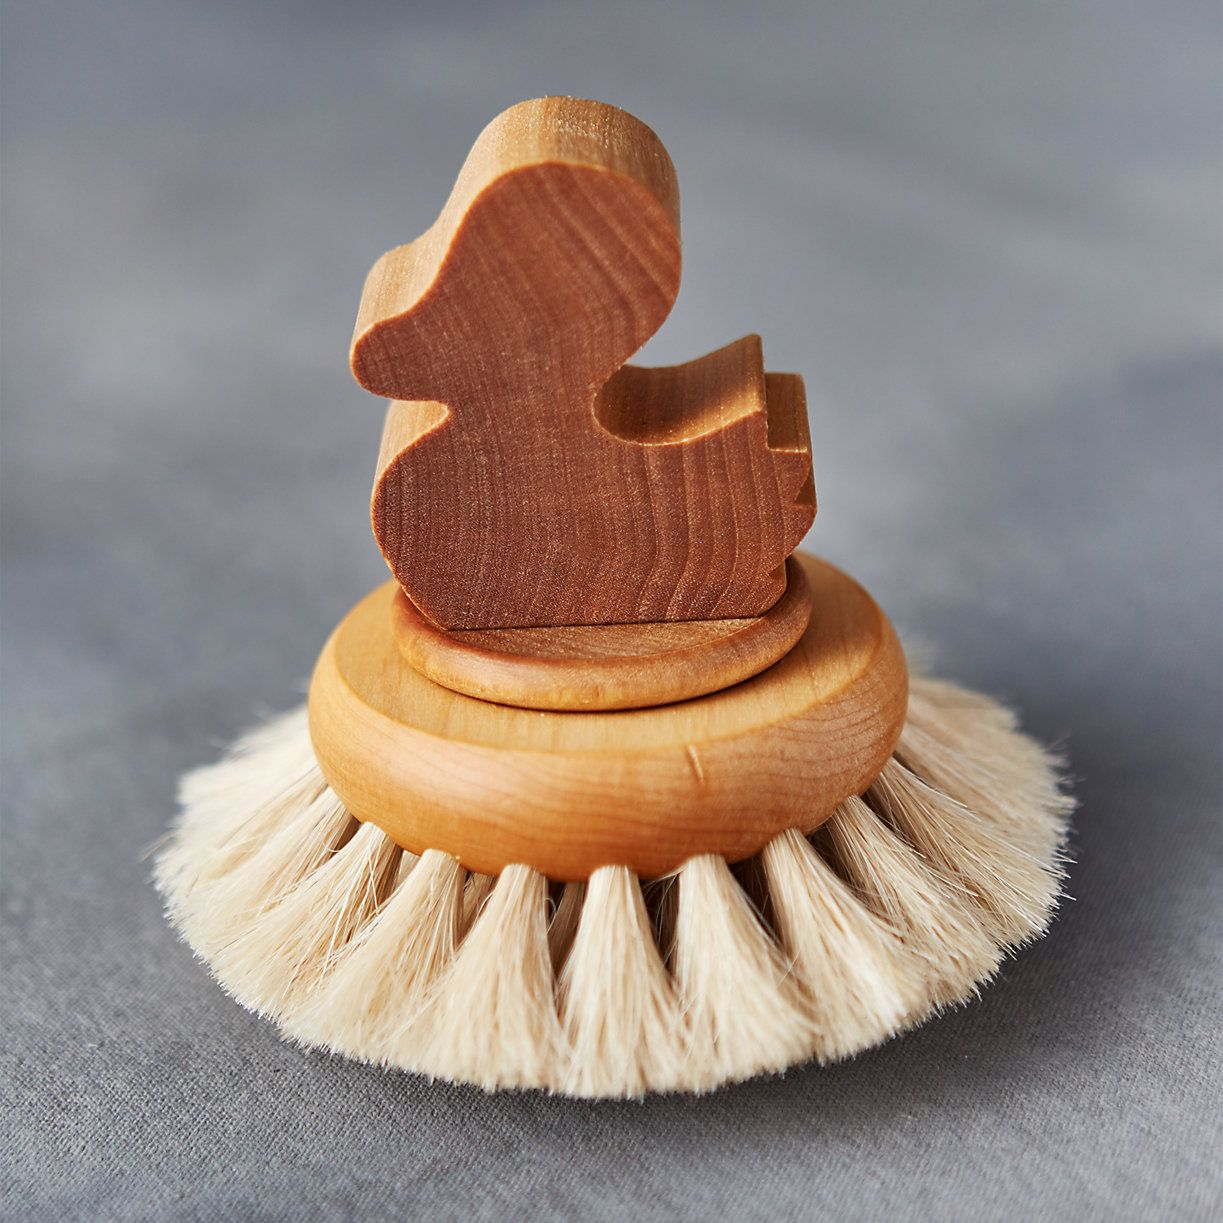 Exceptional Birch Duck Bath Brush Nice Look